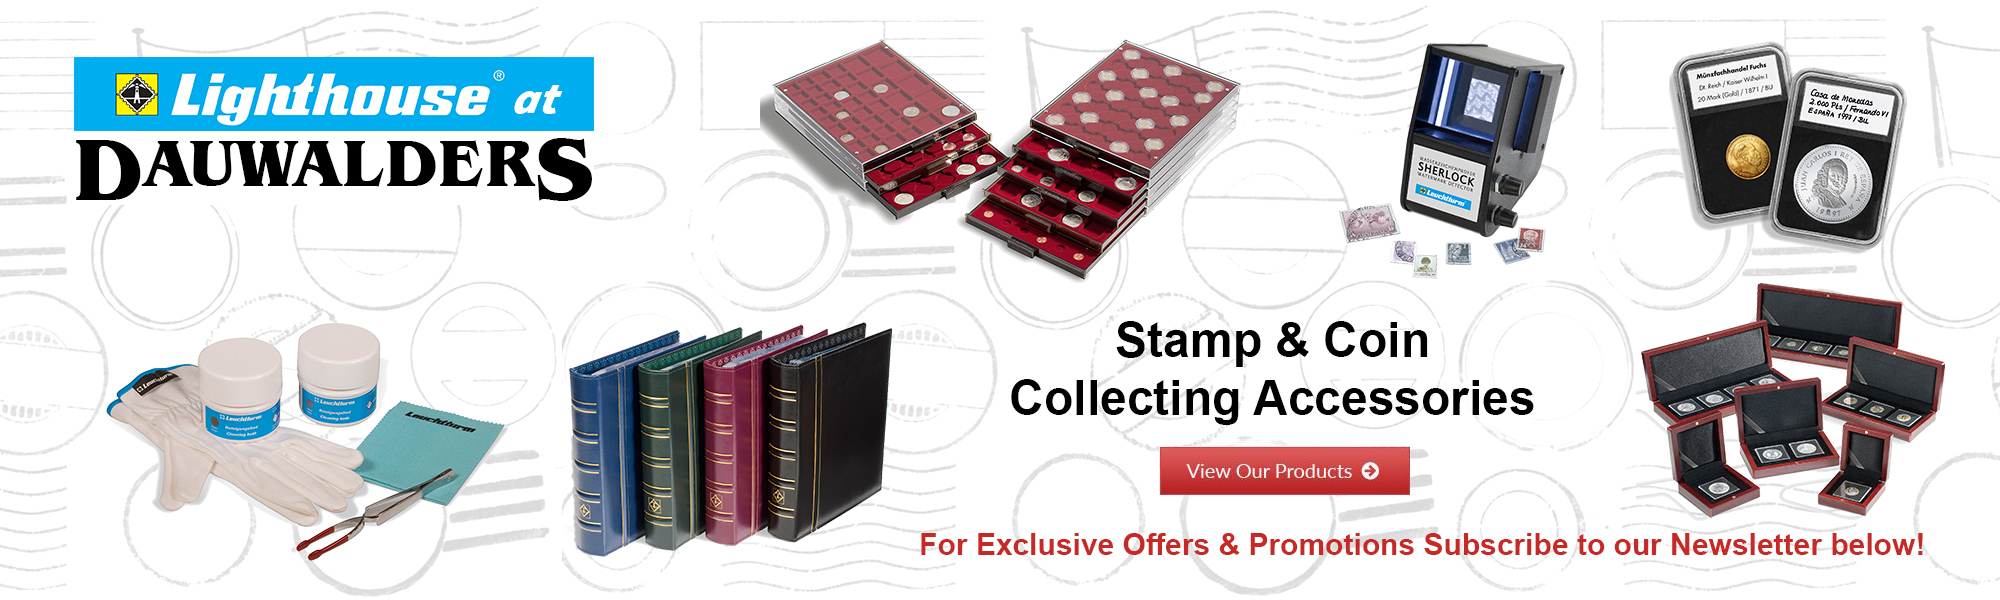 Lighthouse stamp and coin collecting accessories